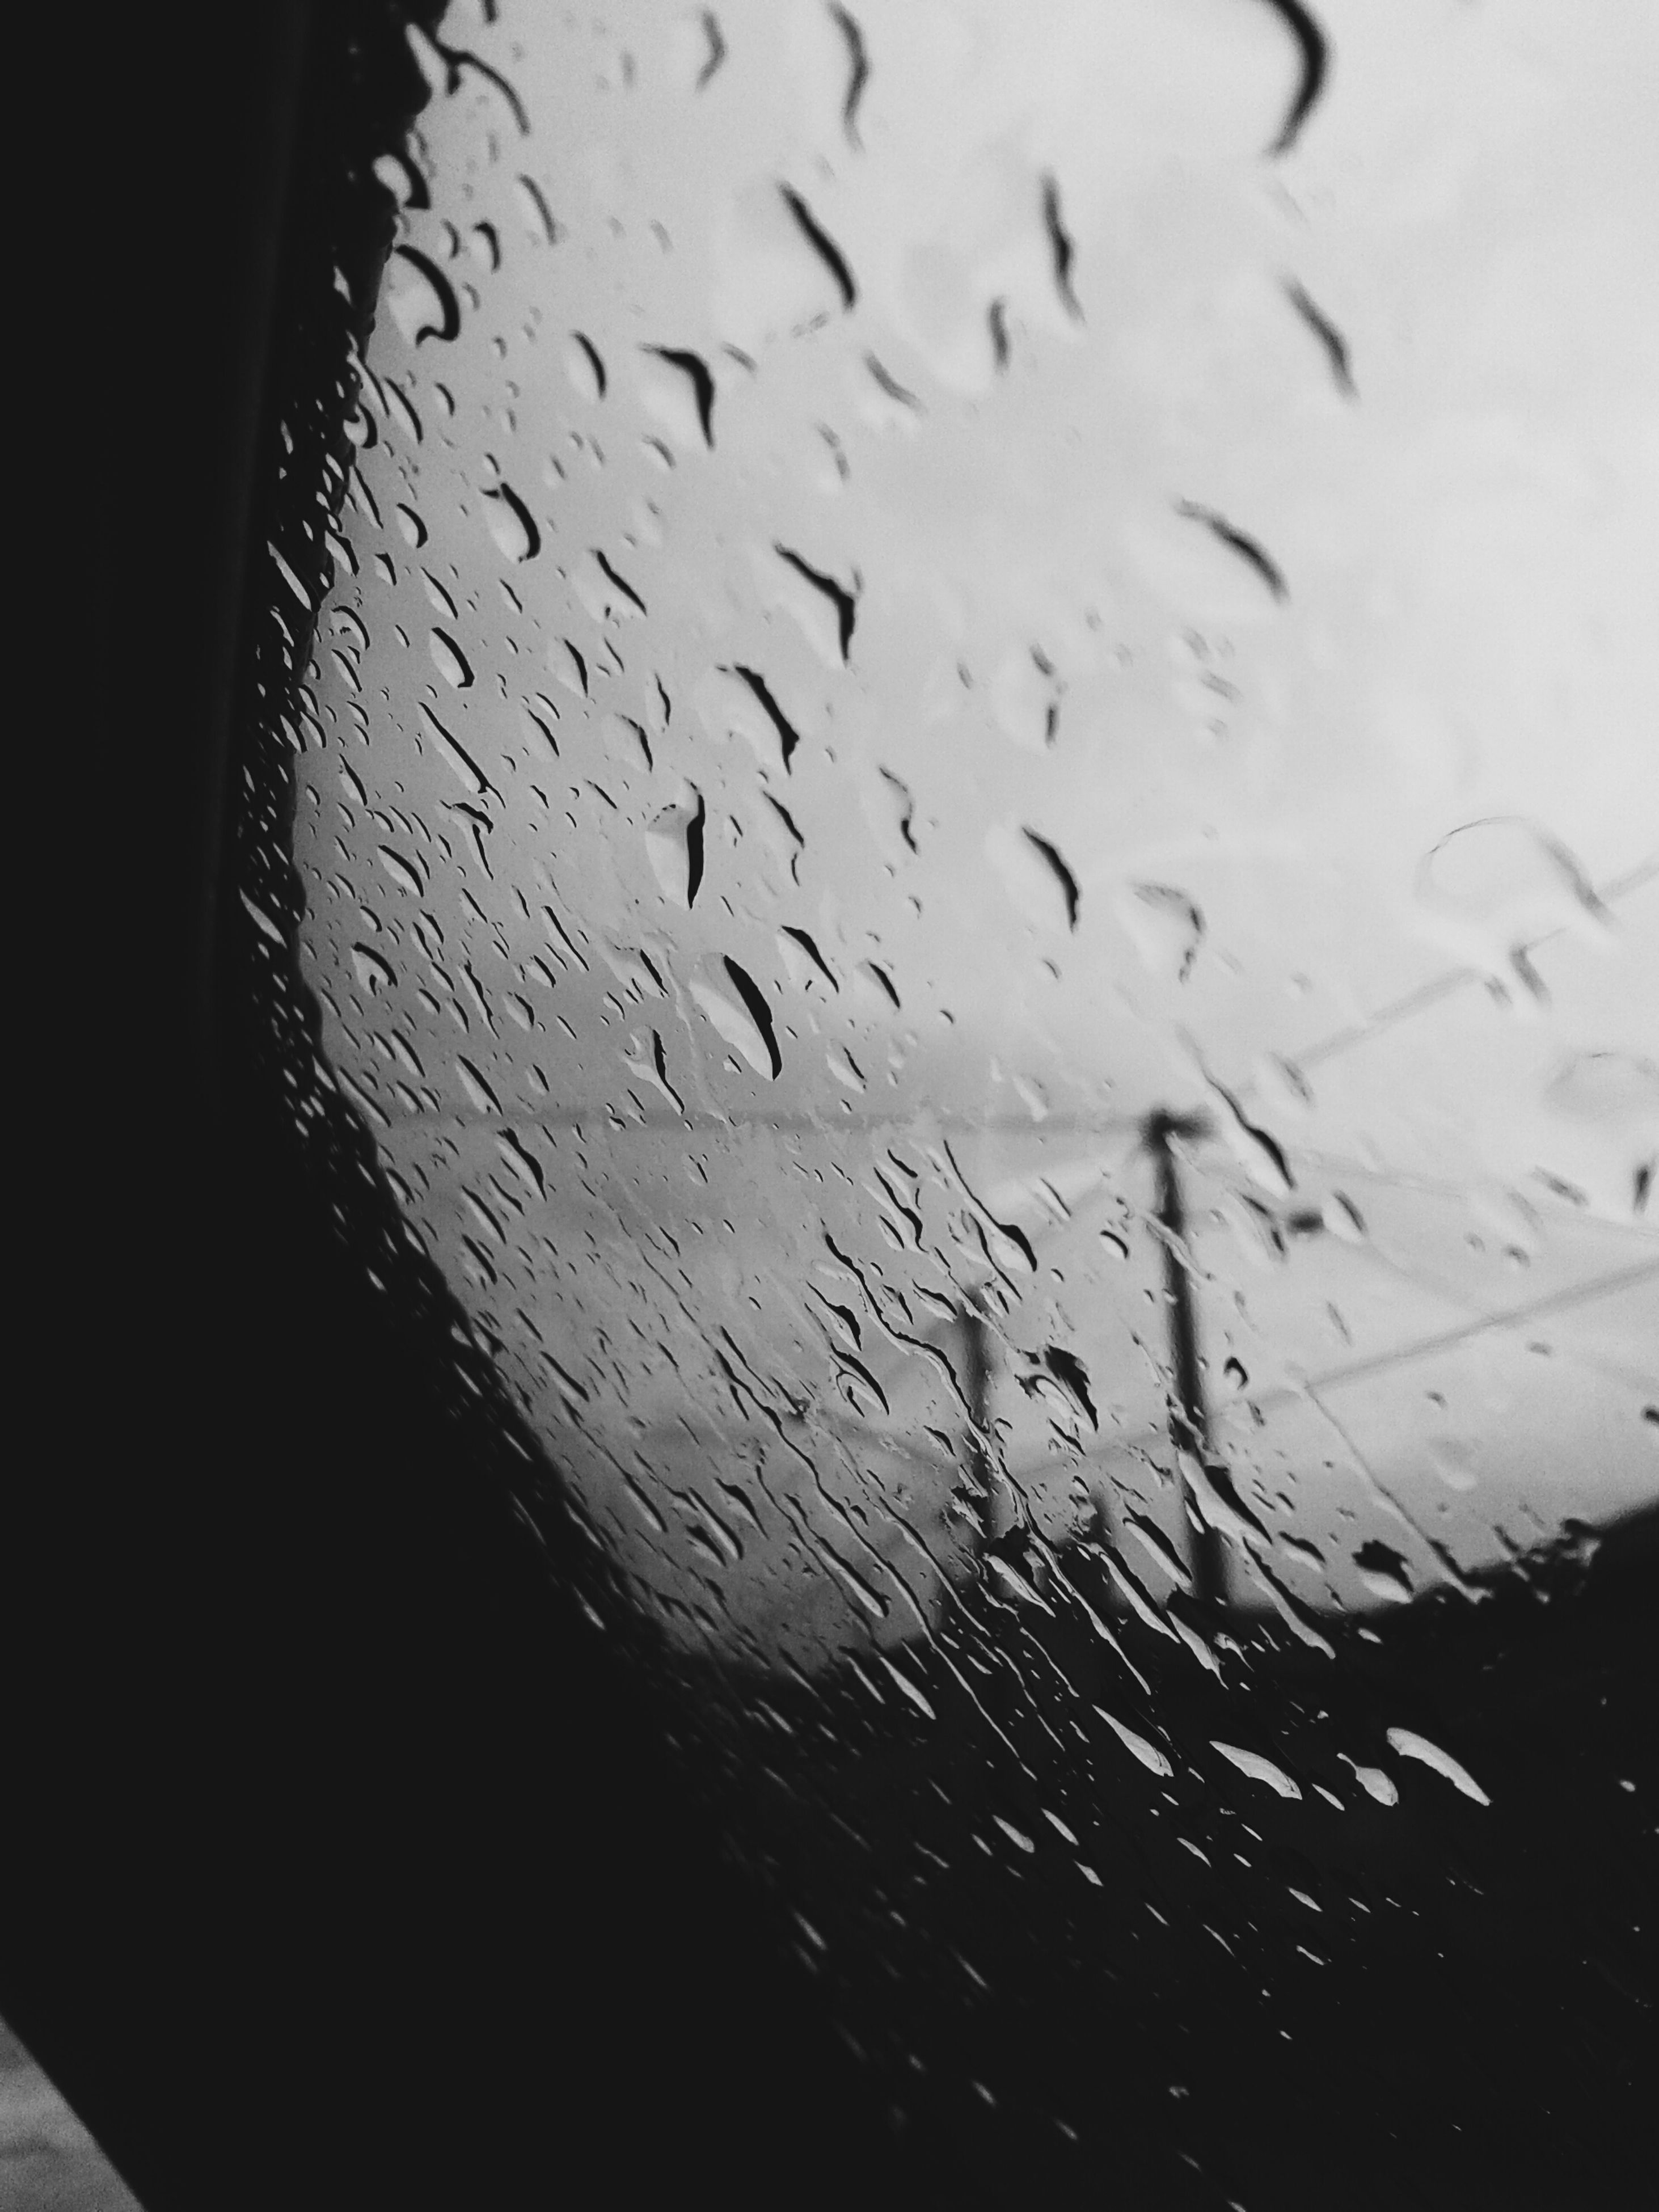 drop, wet, window, water, rain, transparent, indoors, glass - material, raindrop, weather, glass, backgrounds, focus on foreground, close-up, full frame, season, sky, water drop, droplet, monsoon